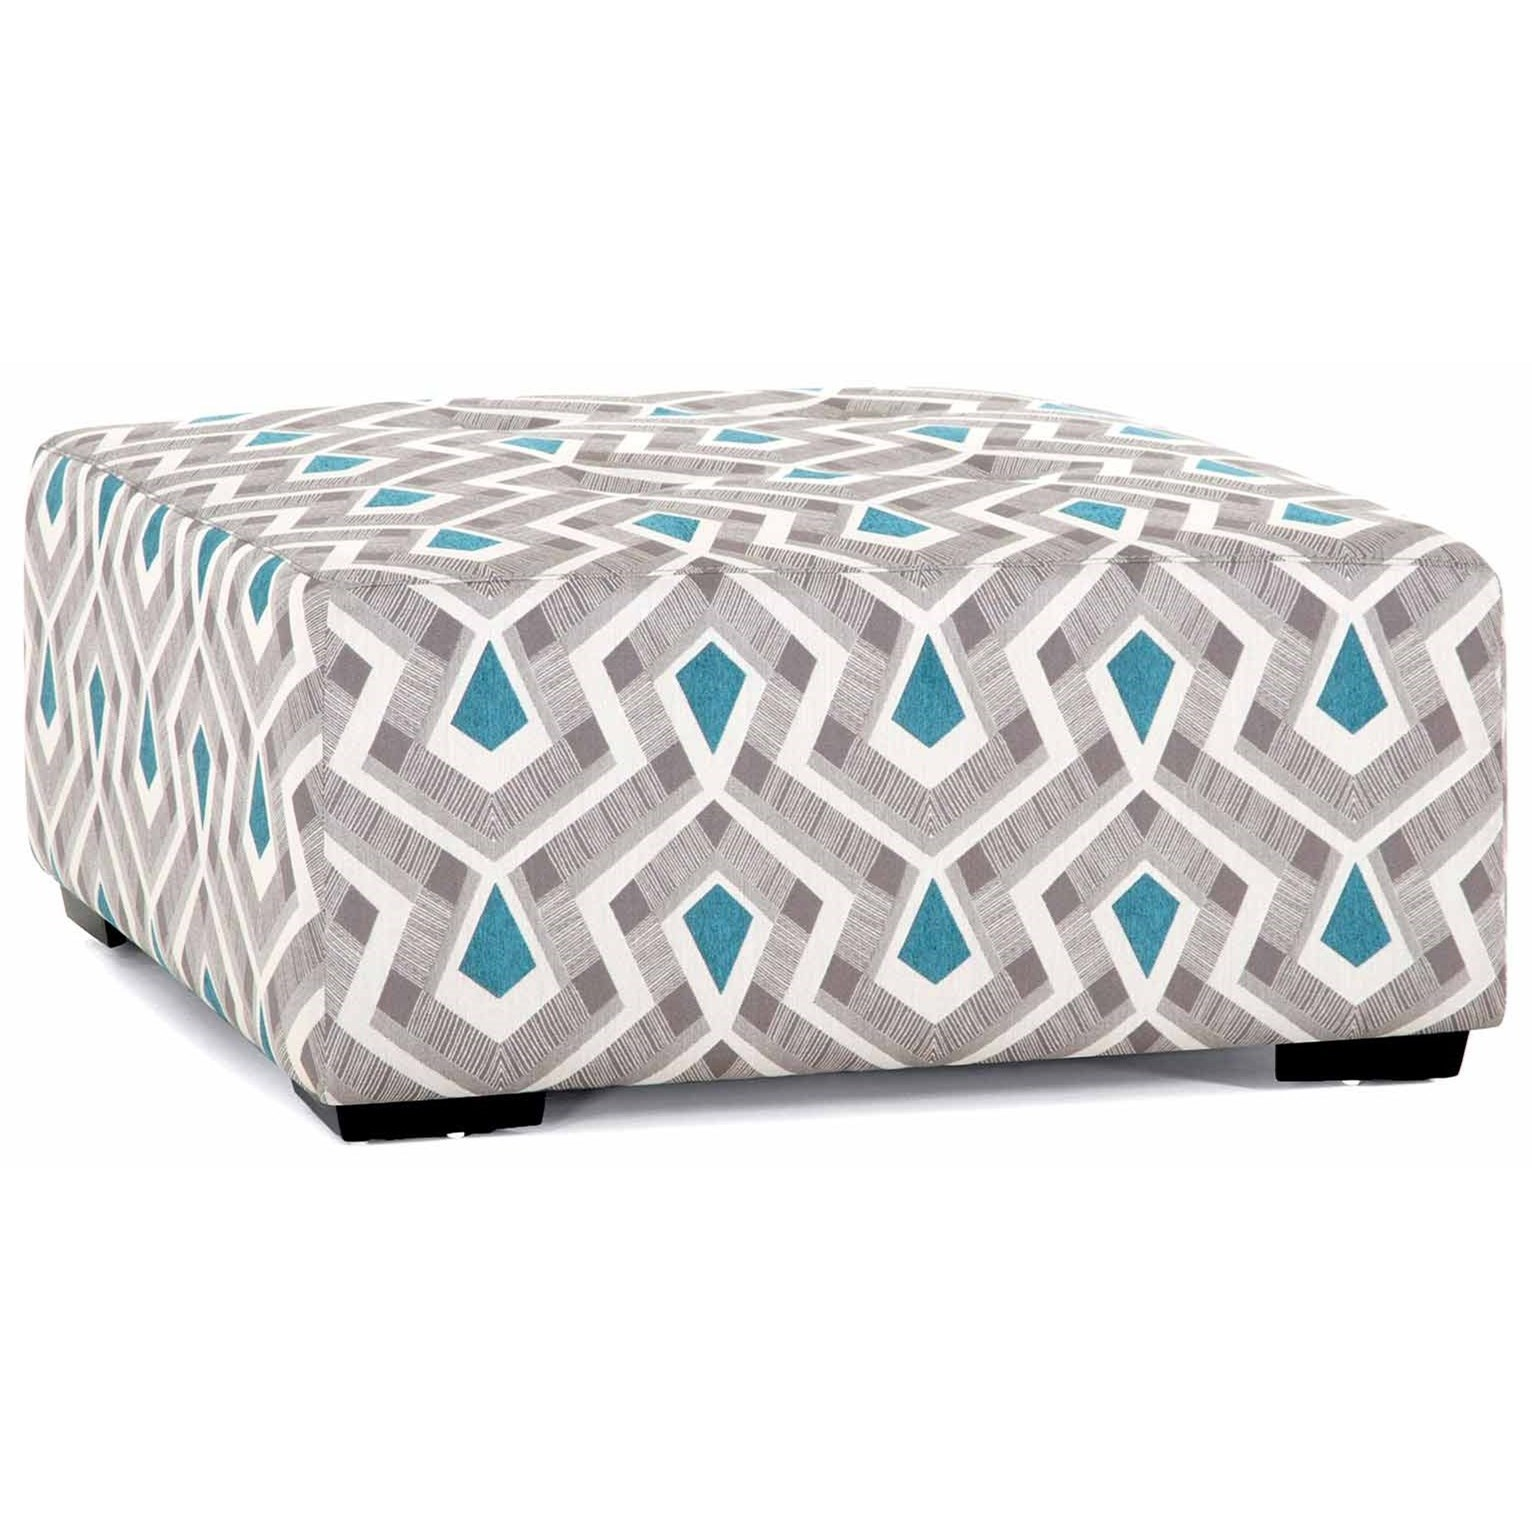 909 Ottoman by Franklin at Wilcox Furniture